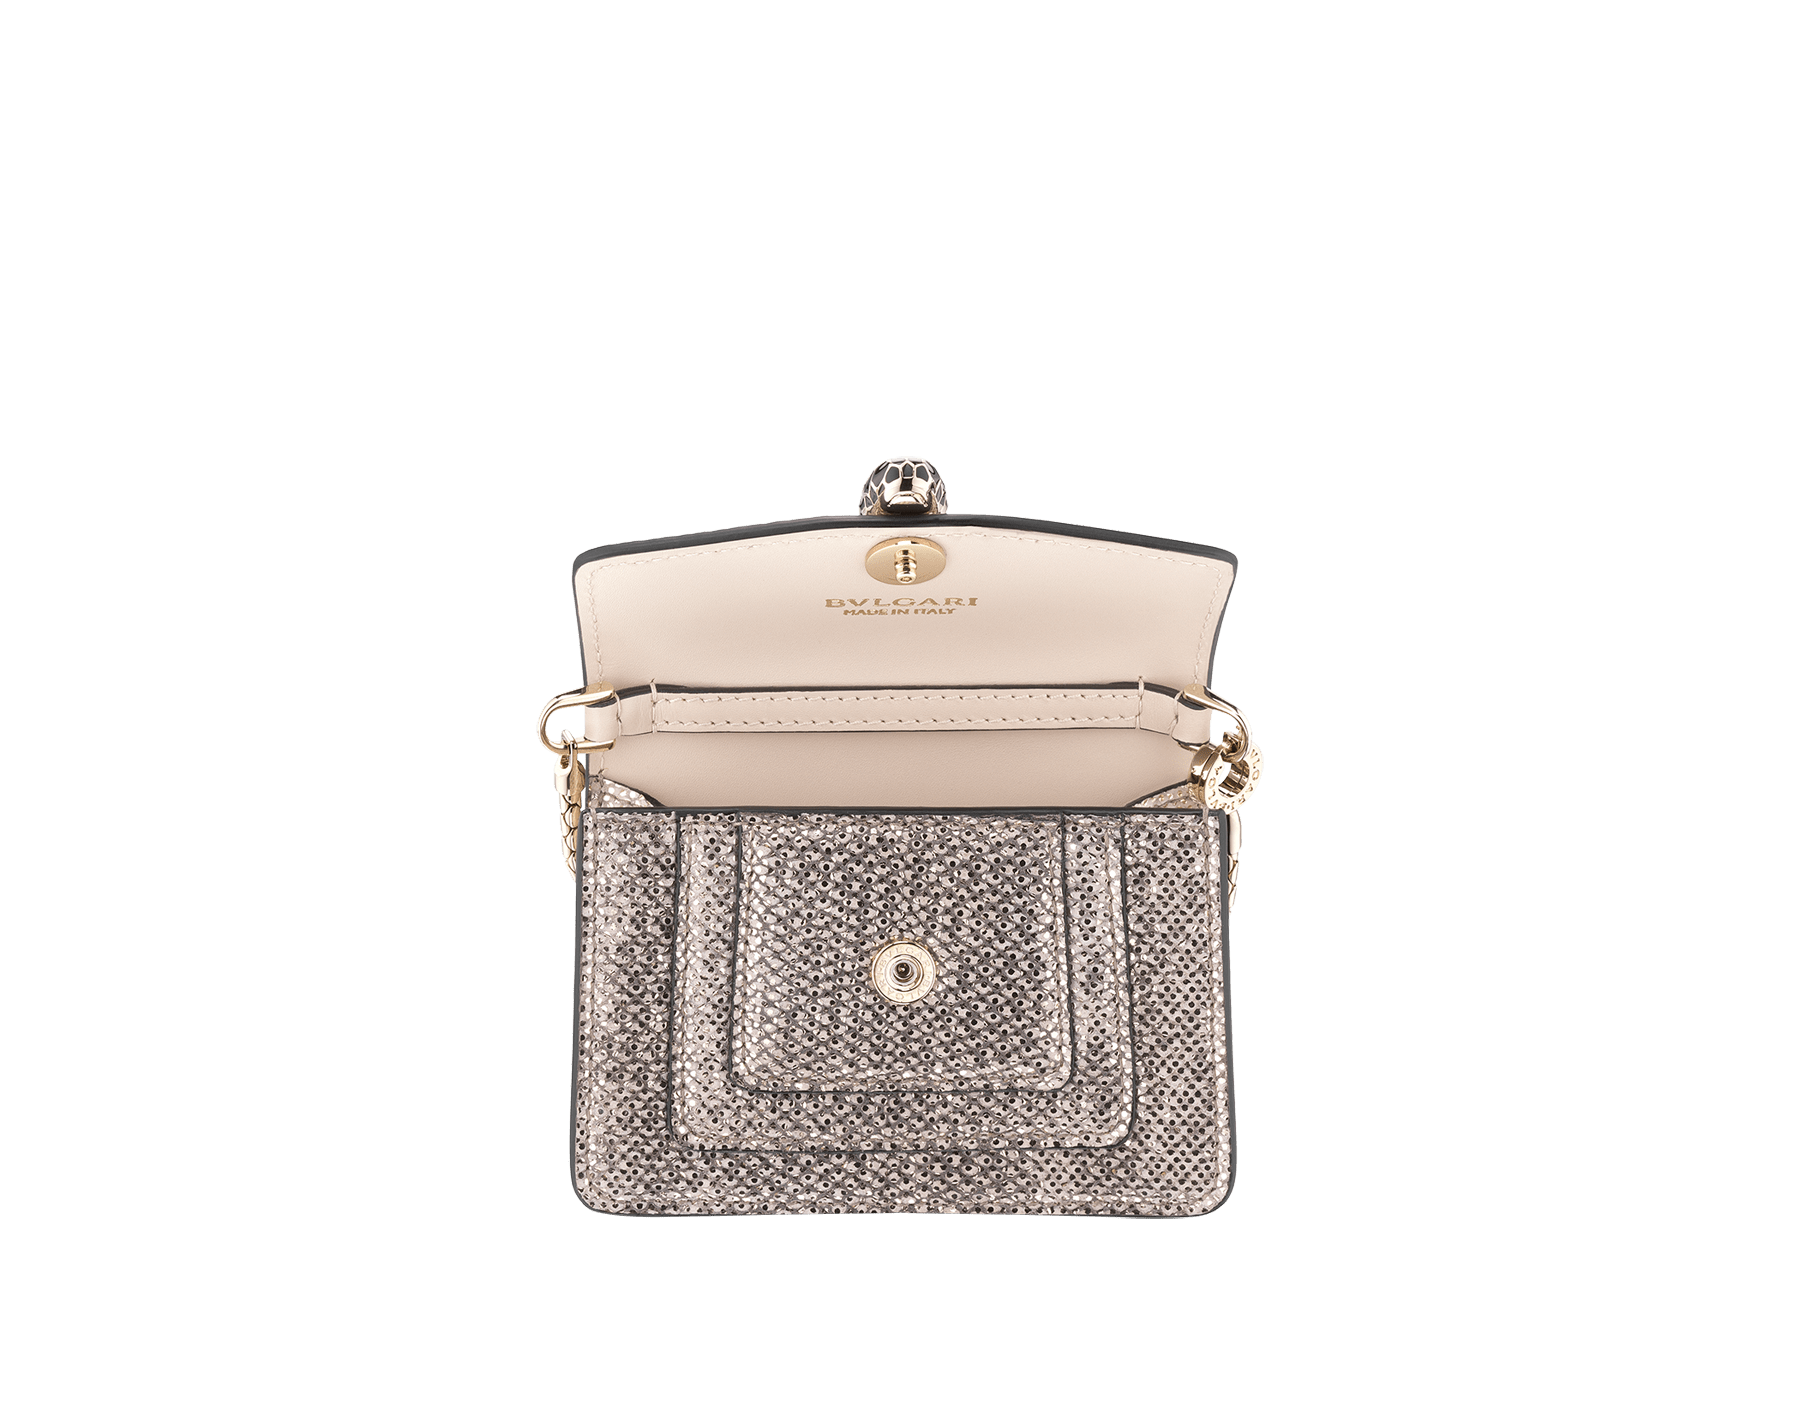 Ciondolo borsa con miniatura Serpenti Forever in karung metallizzato bianco opale con fodera in vitello color corallo. Iconica chiusura a pressione Serpenti in ottone placcato oro chiaro, smalto nero e glitter bianco opale con occhi in smalto nero. 288366 image 2